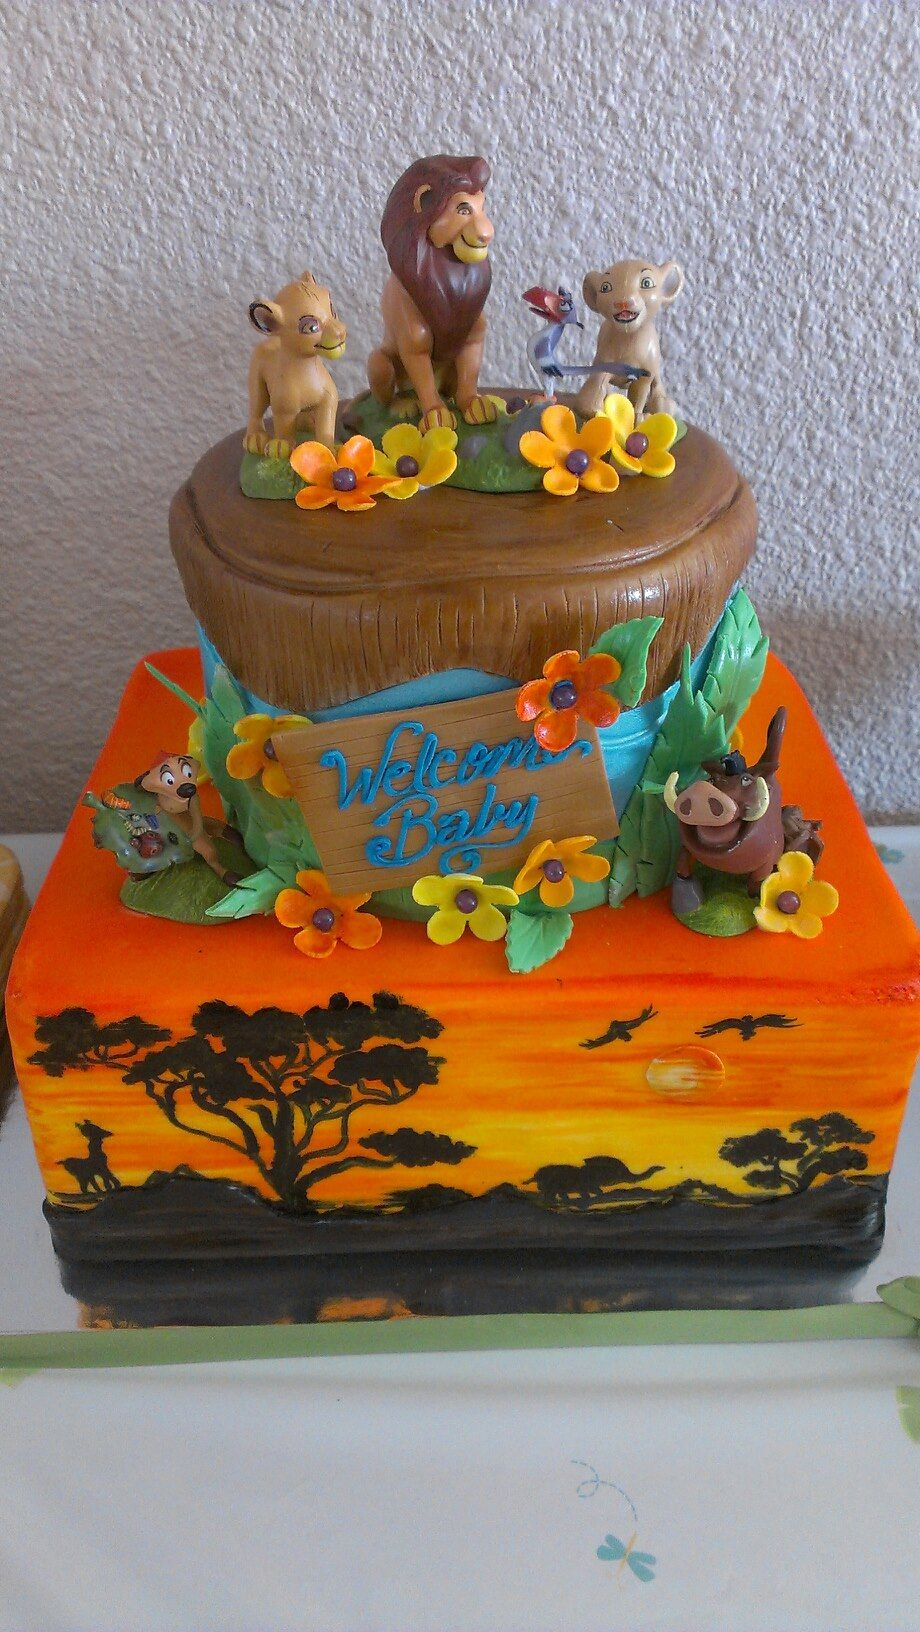 Lion King Baby Shower Cake By Hottcakez Of Las Vegas March 30